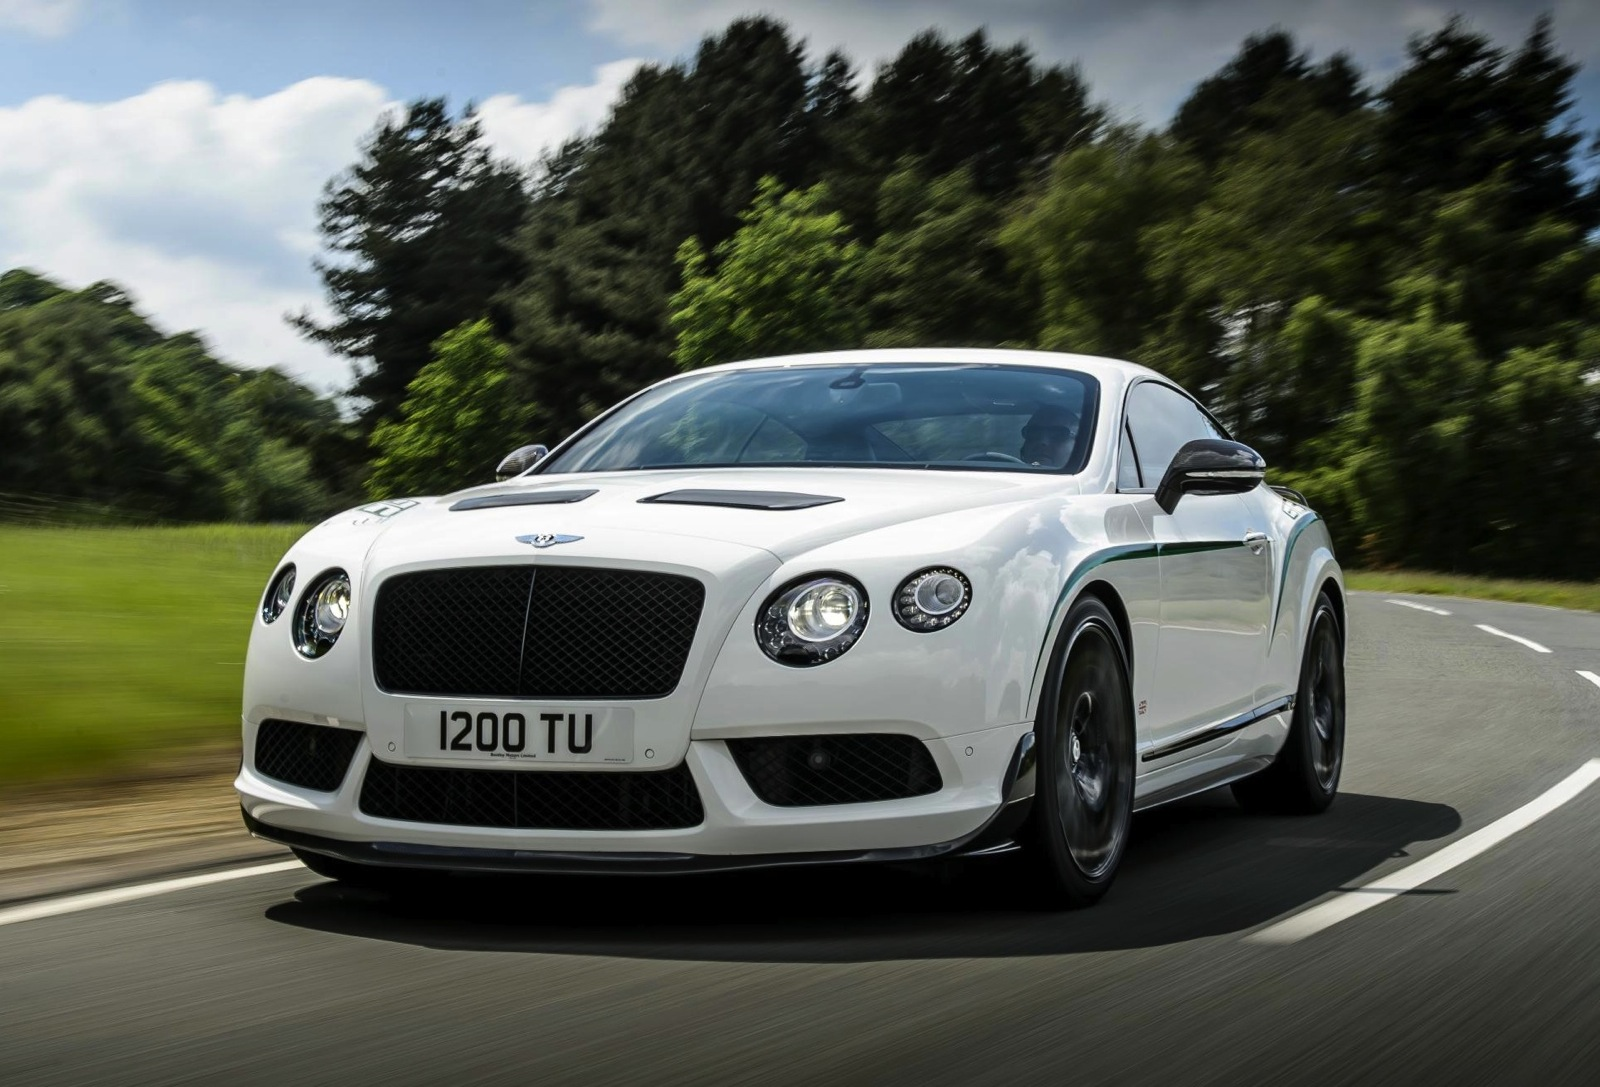 Bentley Continental GT3-R is most dynamic Bentley ever